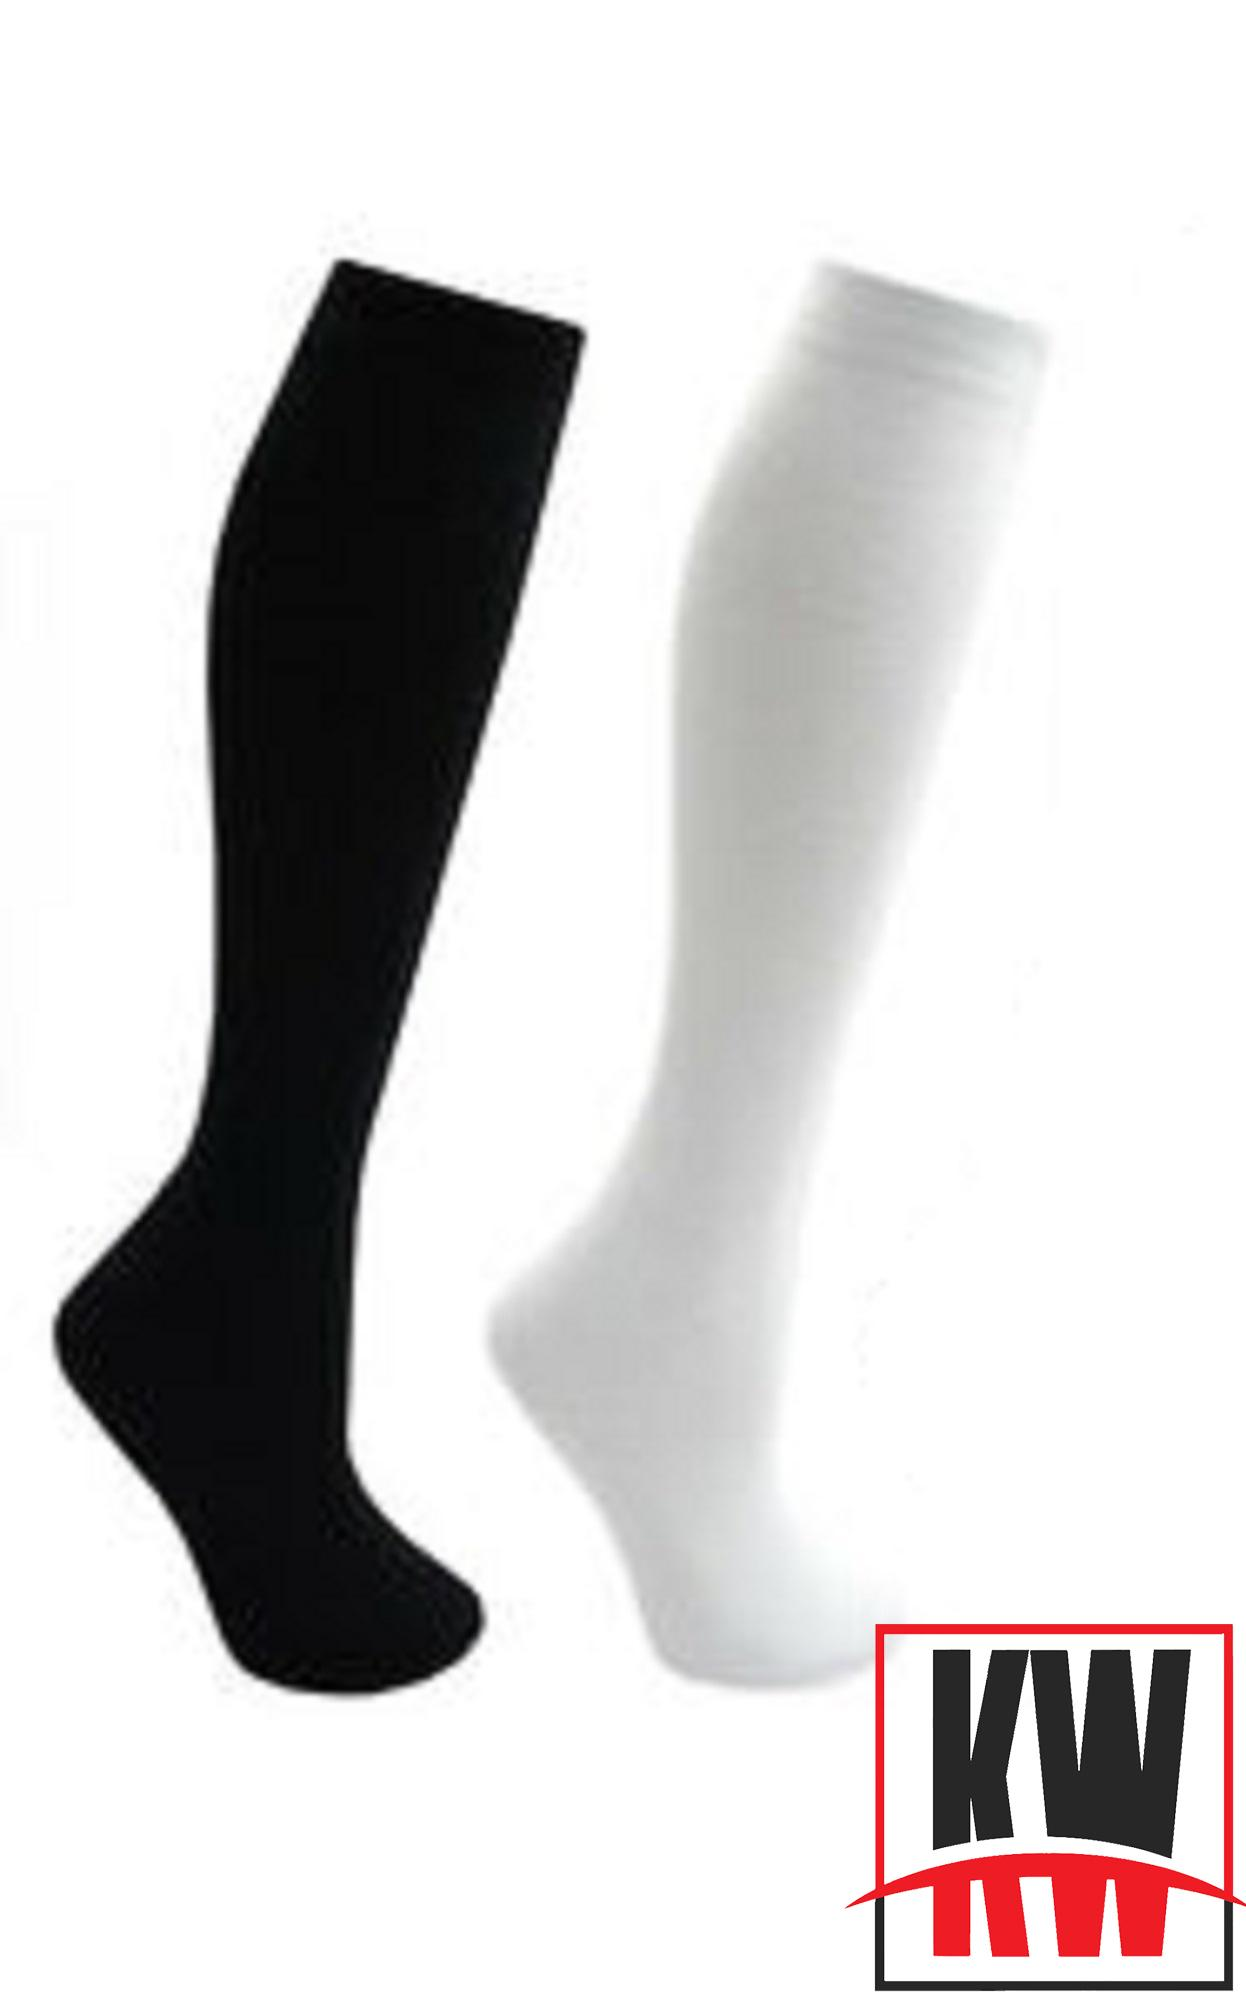 ee915a404 Girls Socks for sale - Tights for Girls Online Deals   Prices in ...